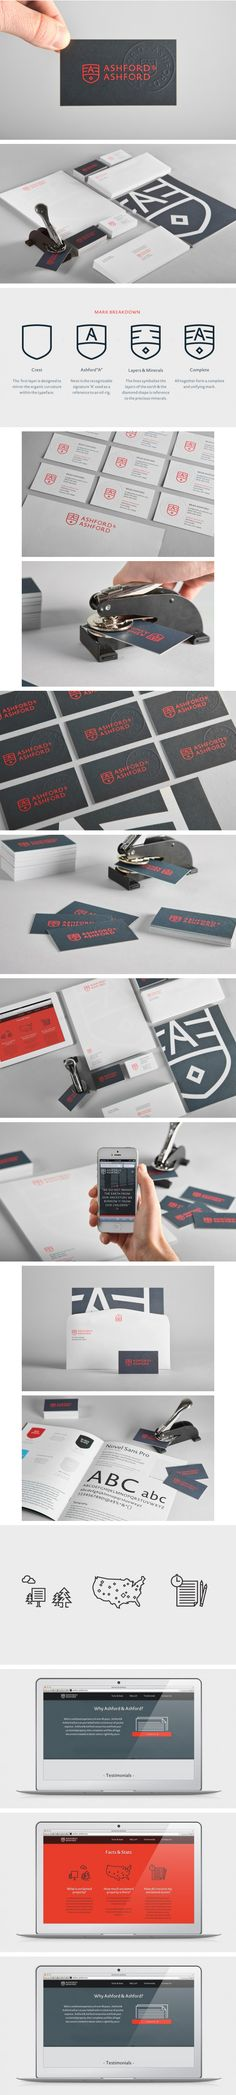 Ashford & Ashford identity | #stationary #corporate #design #corporatedesign #identity #branding #marketing < repinned by www.BlickeDeeler.de | Take a look at www.LogoGestaltung-Hamburg.de